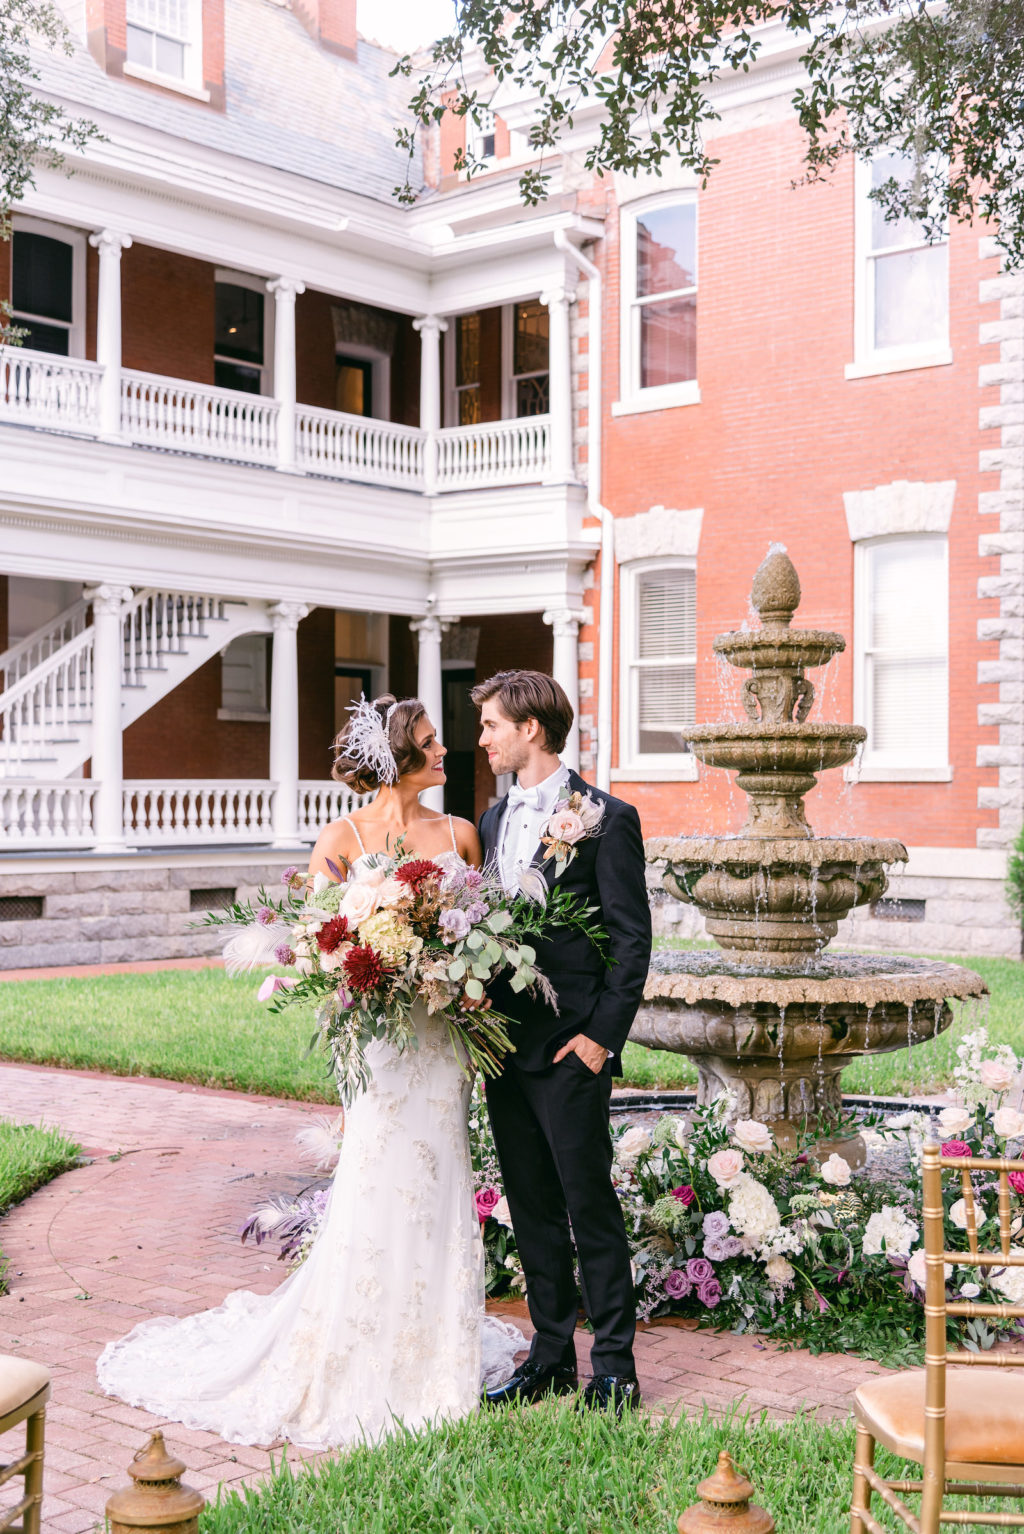 Florida Bride and Groom in Courtyard of Historic Wedding Venue Anderson House, Bride Wearing Lace Wedding Dress Holding Lush Whimsical Purple, Red, White Florals, Feathers, Greenery Bouquet | Tampa Bay Wedding Planner EventFull Weddings